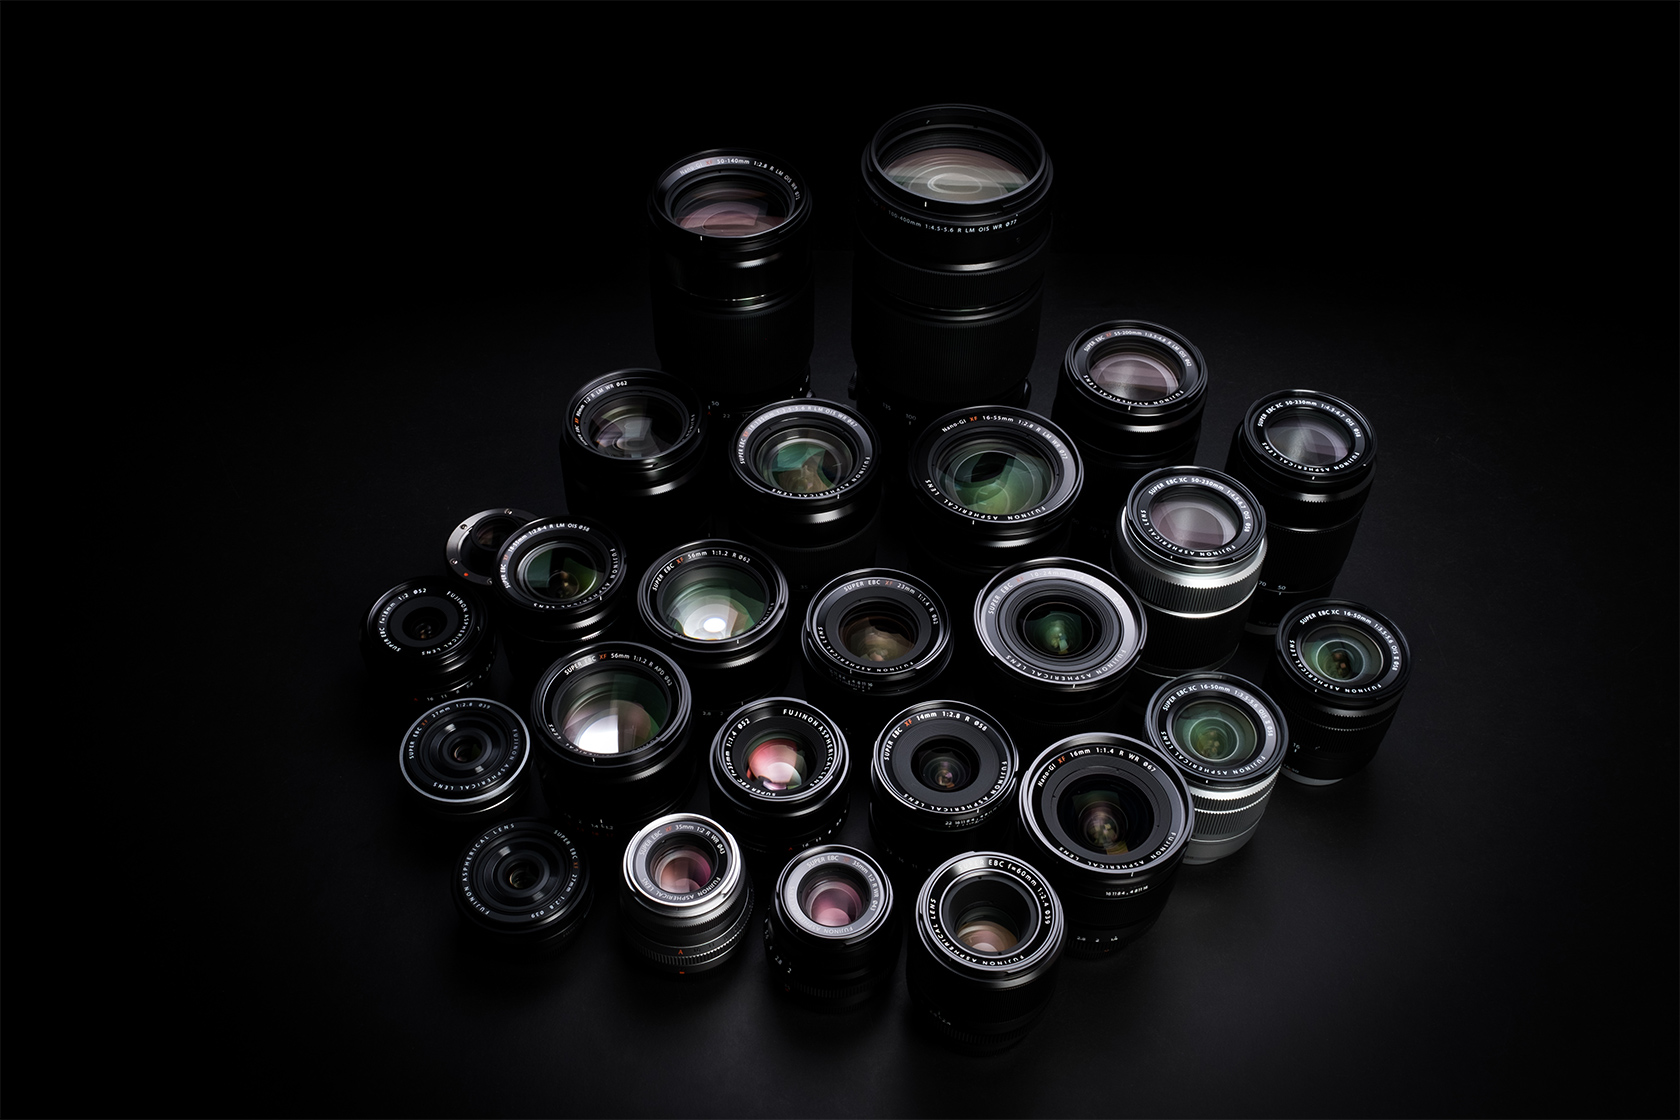 Collage image of X Mount Lenses